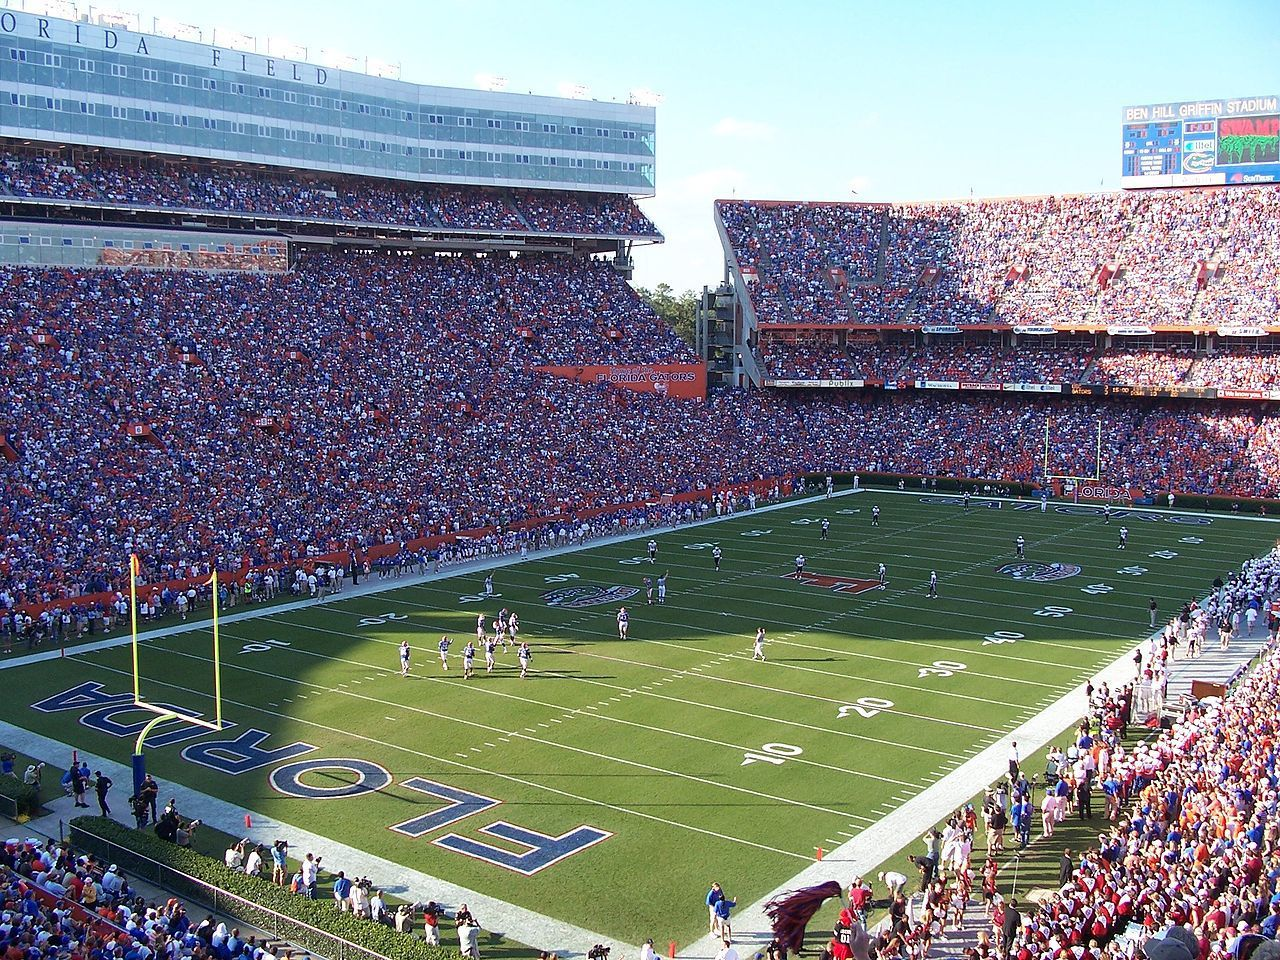 Things To Know When Going To A University Of Florida Football Game